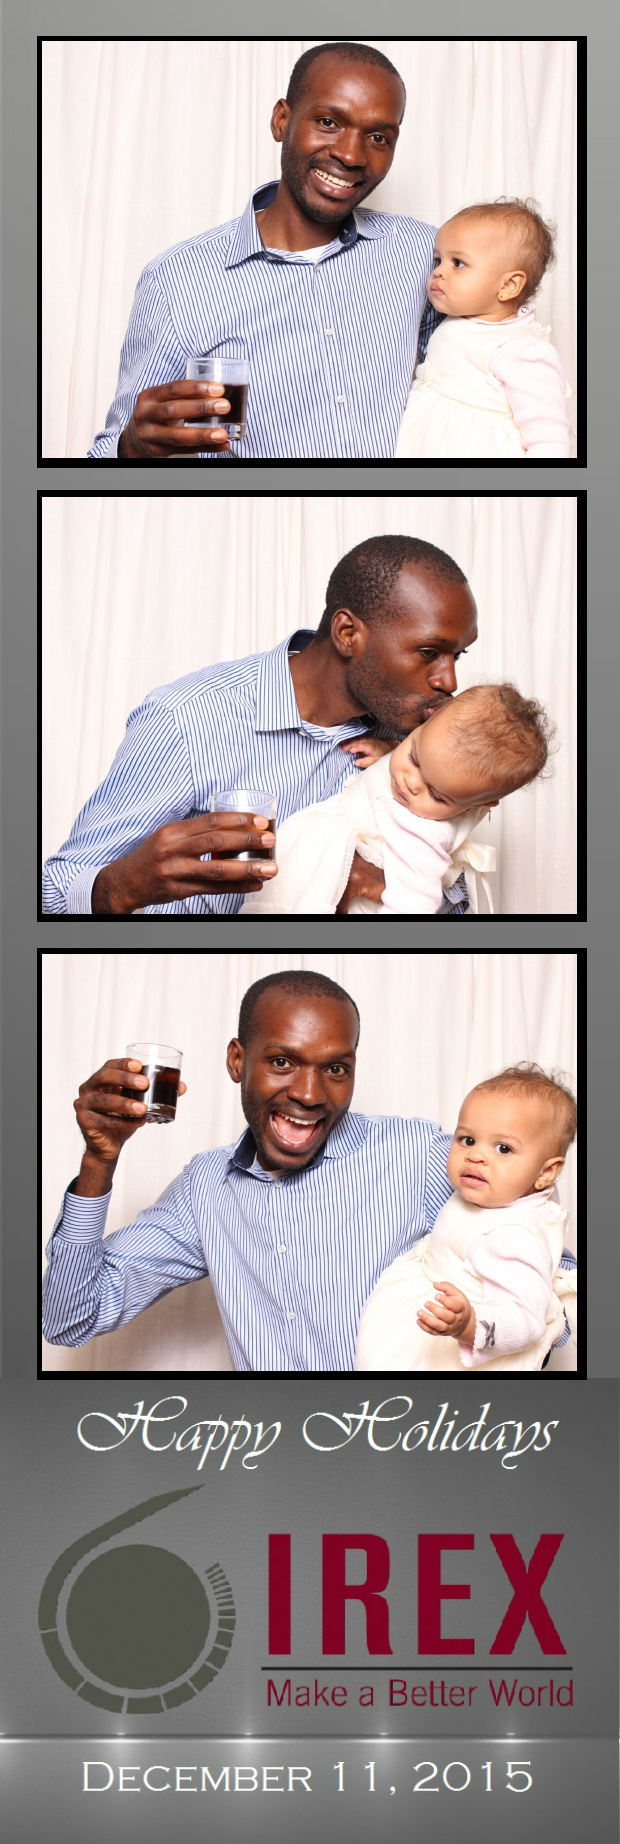 Guest House Events Photo Booth Strips IREX (22).jpg